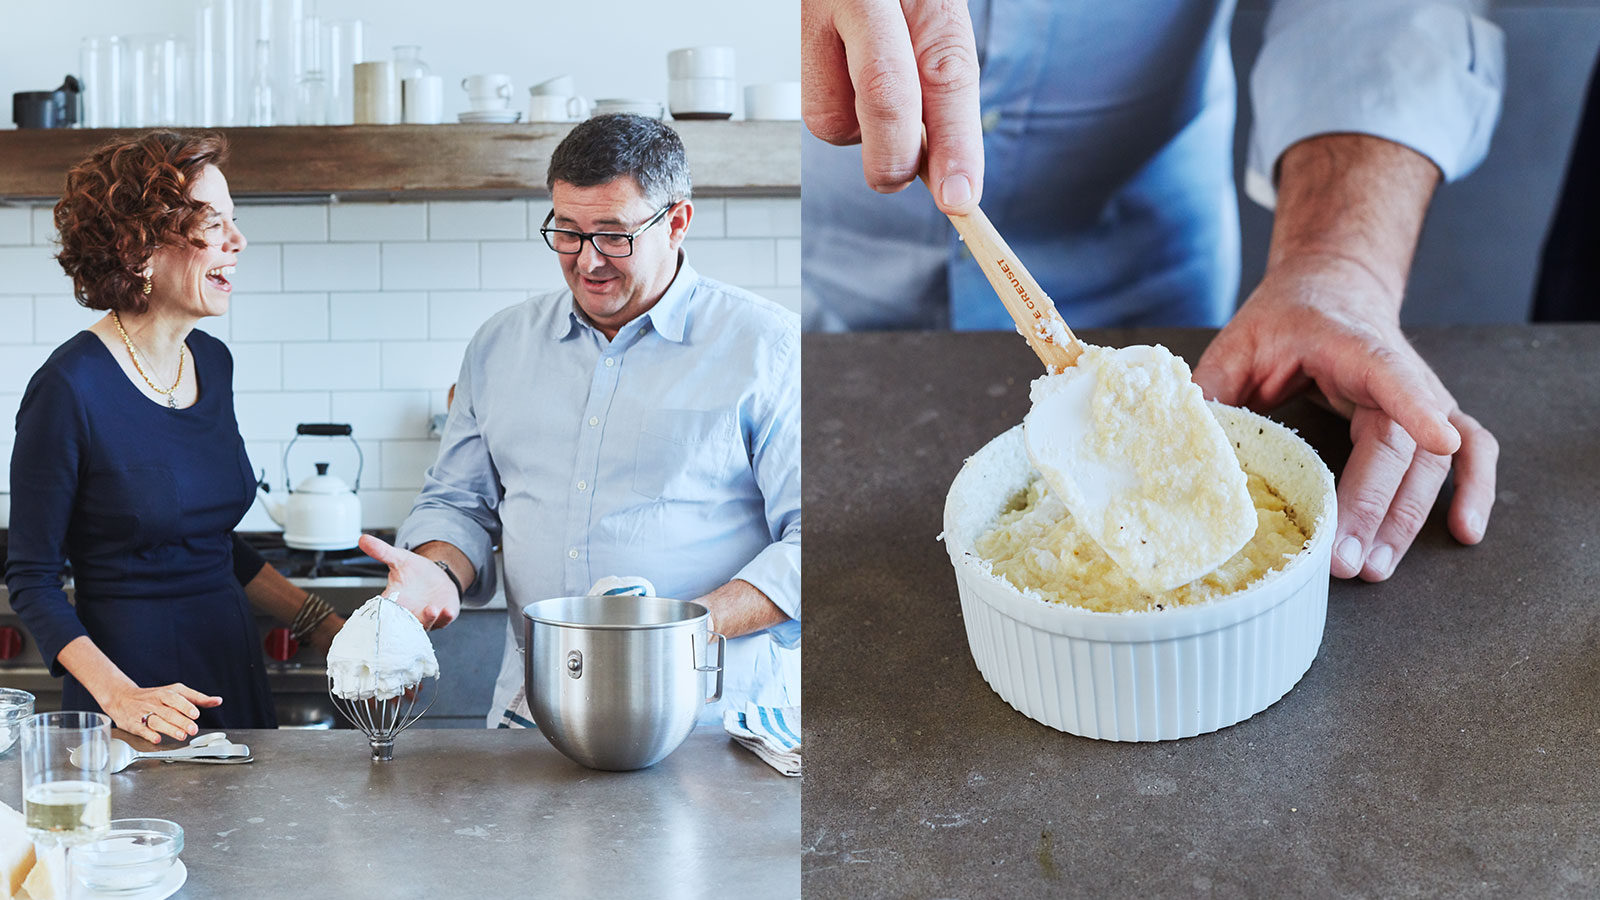 How to Make a Soufflé